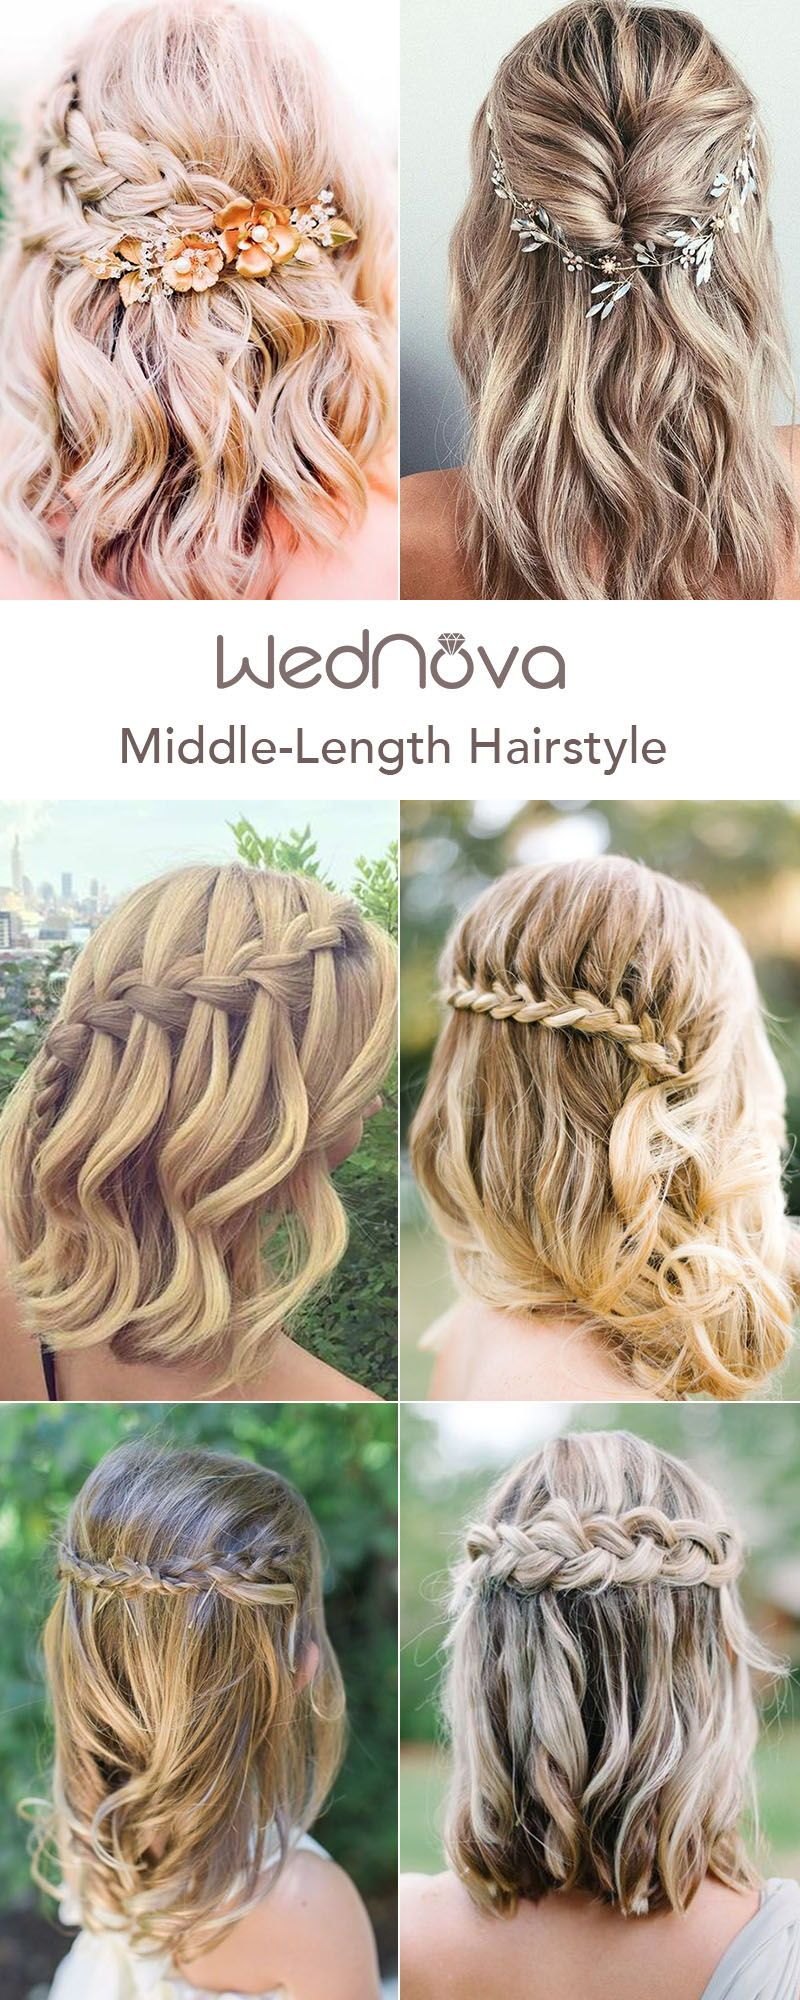 36 Chic Looks With Elegant Wedding Hairstyles Wedding Forward Braids For Short Hair Shaved Side Hairstyles Cute Braided Hairstyles